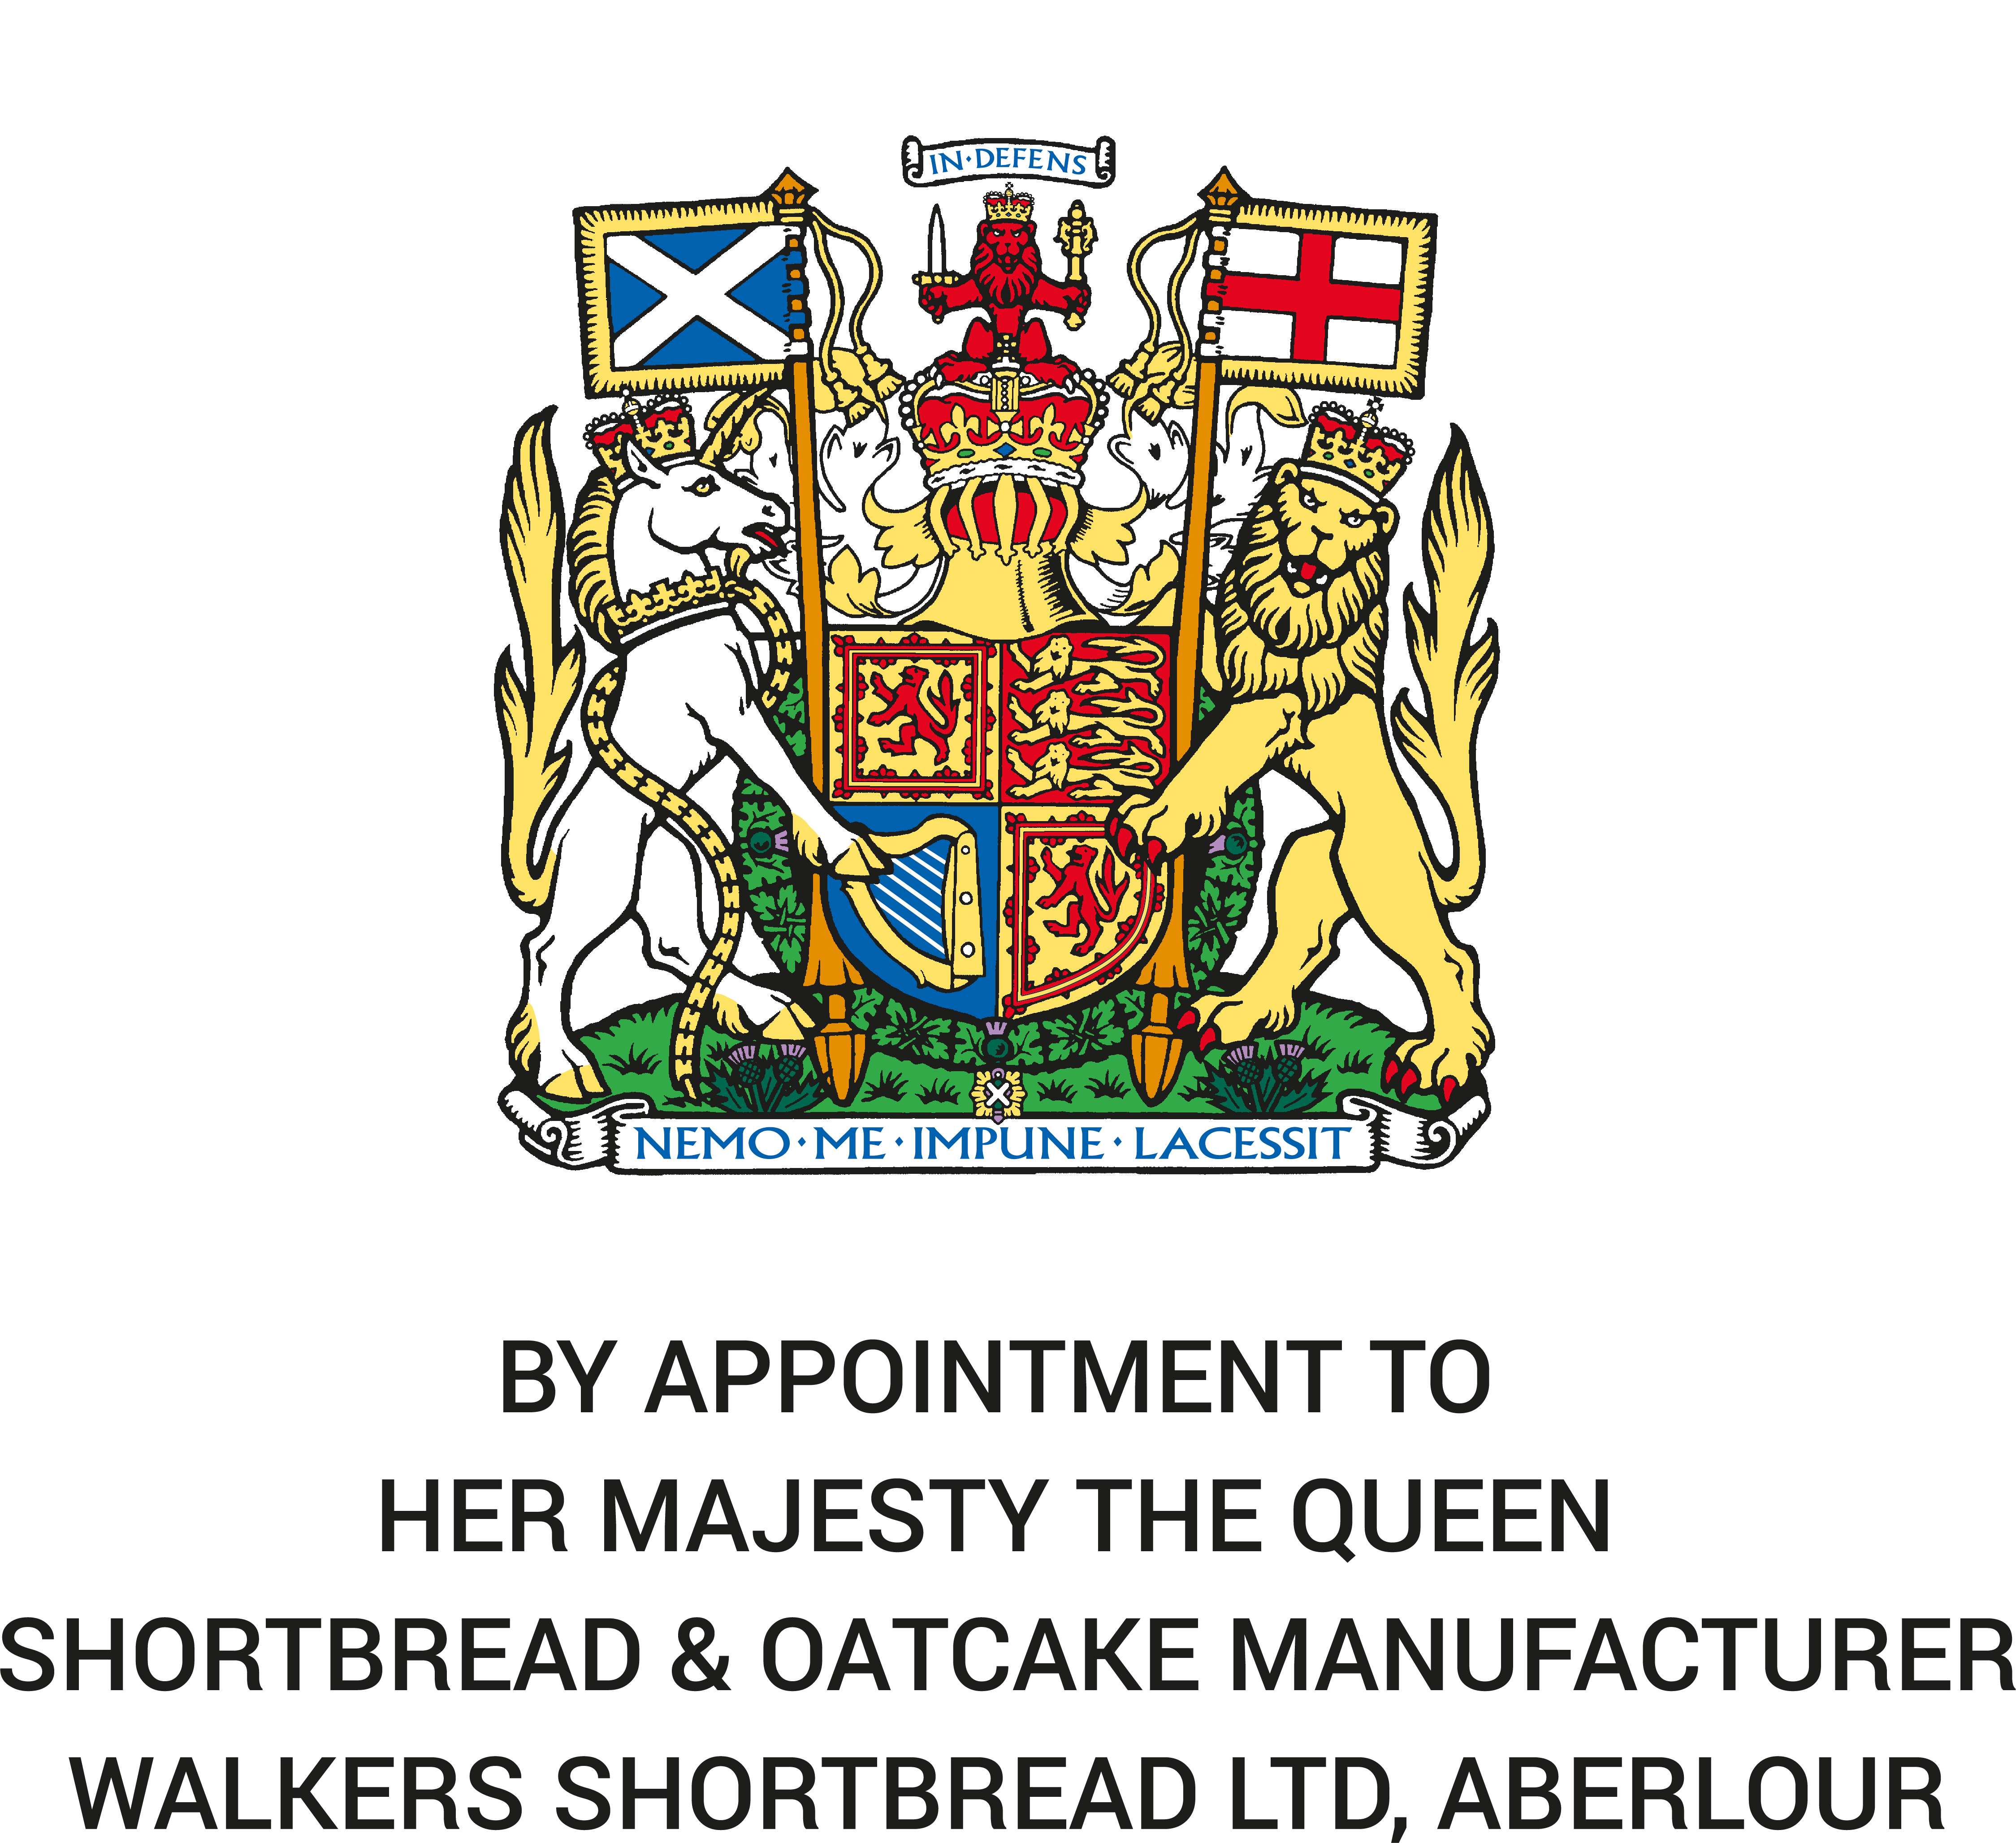 Royal Warrant Granted to Walkers For Shortbread